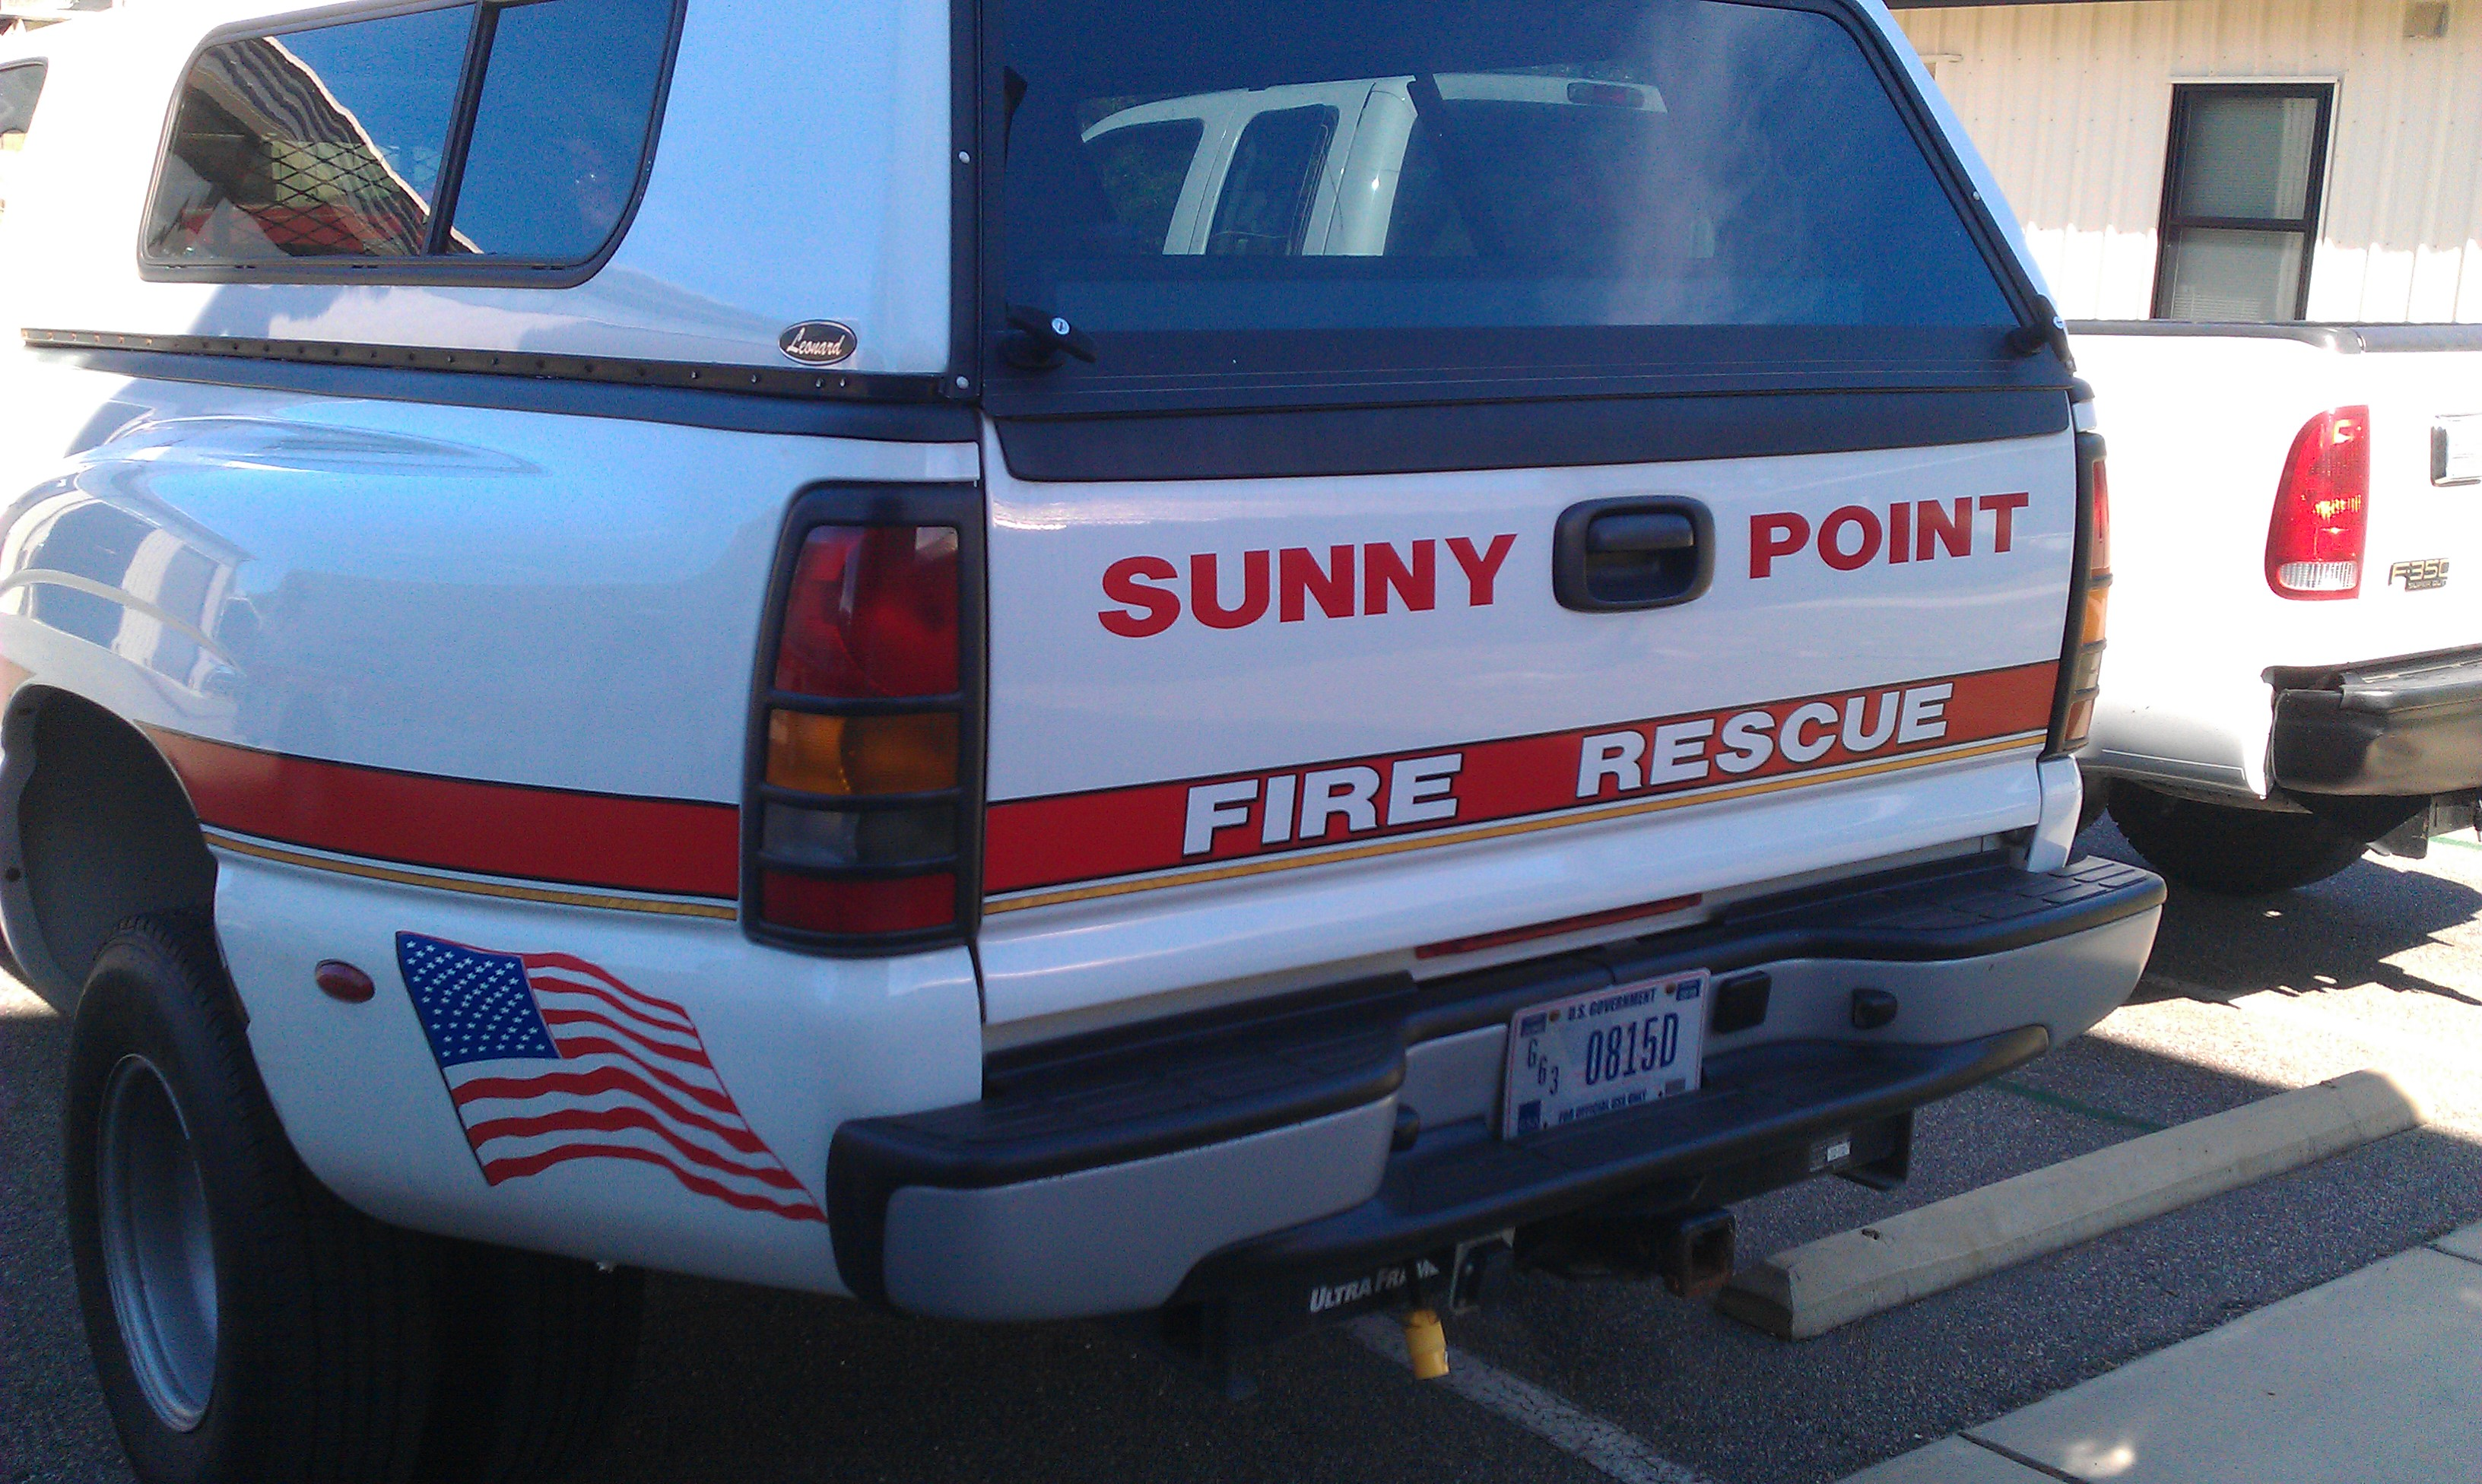 Sunny Point Fire Rescue Truck Decal